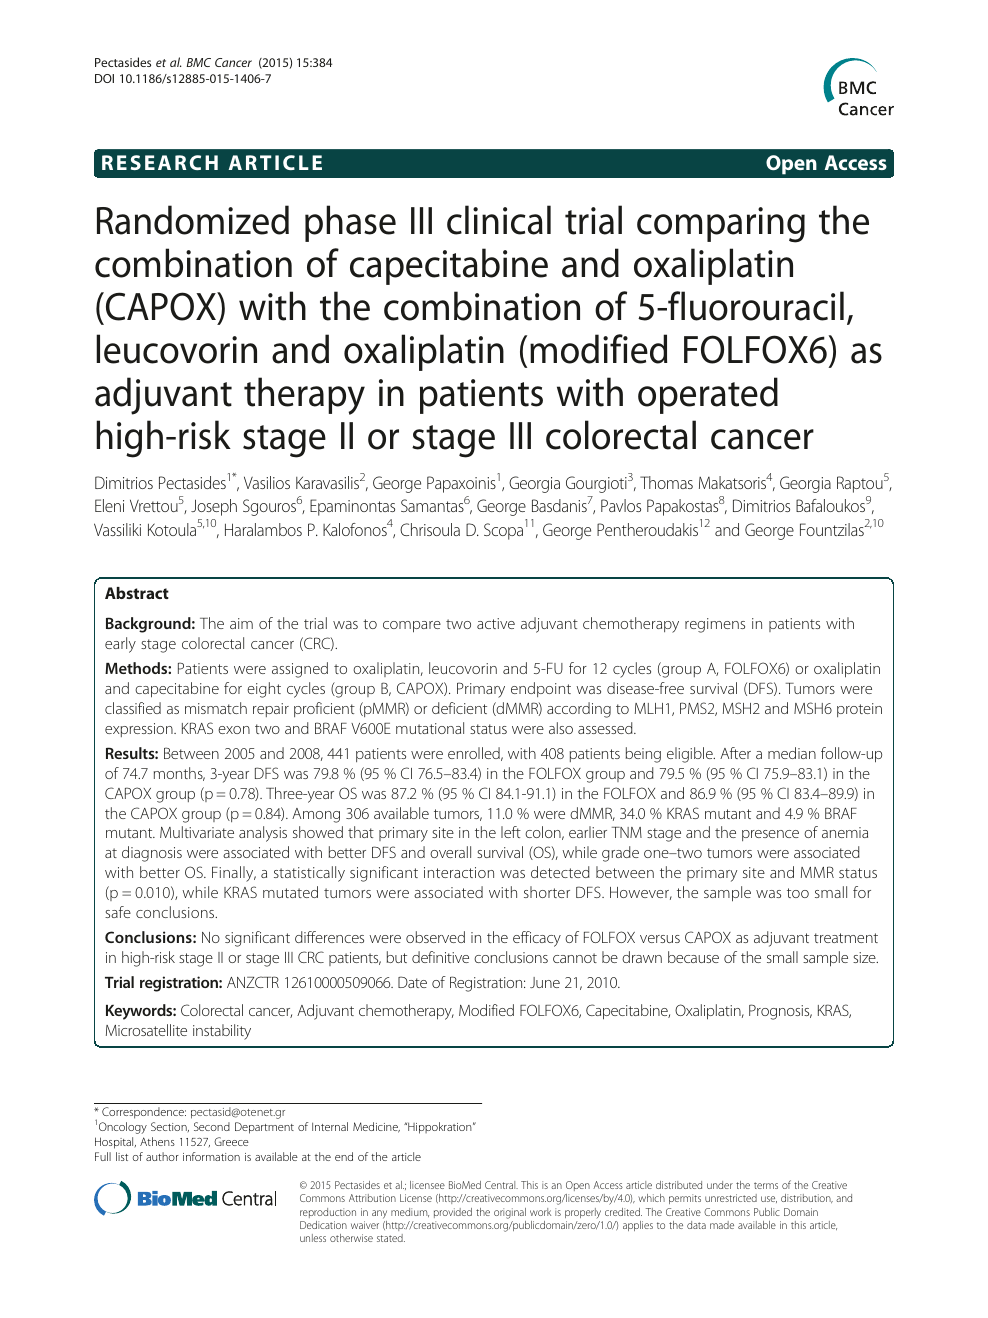 Randomized phase III clinical trial comparing the combination of